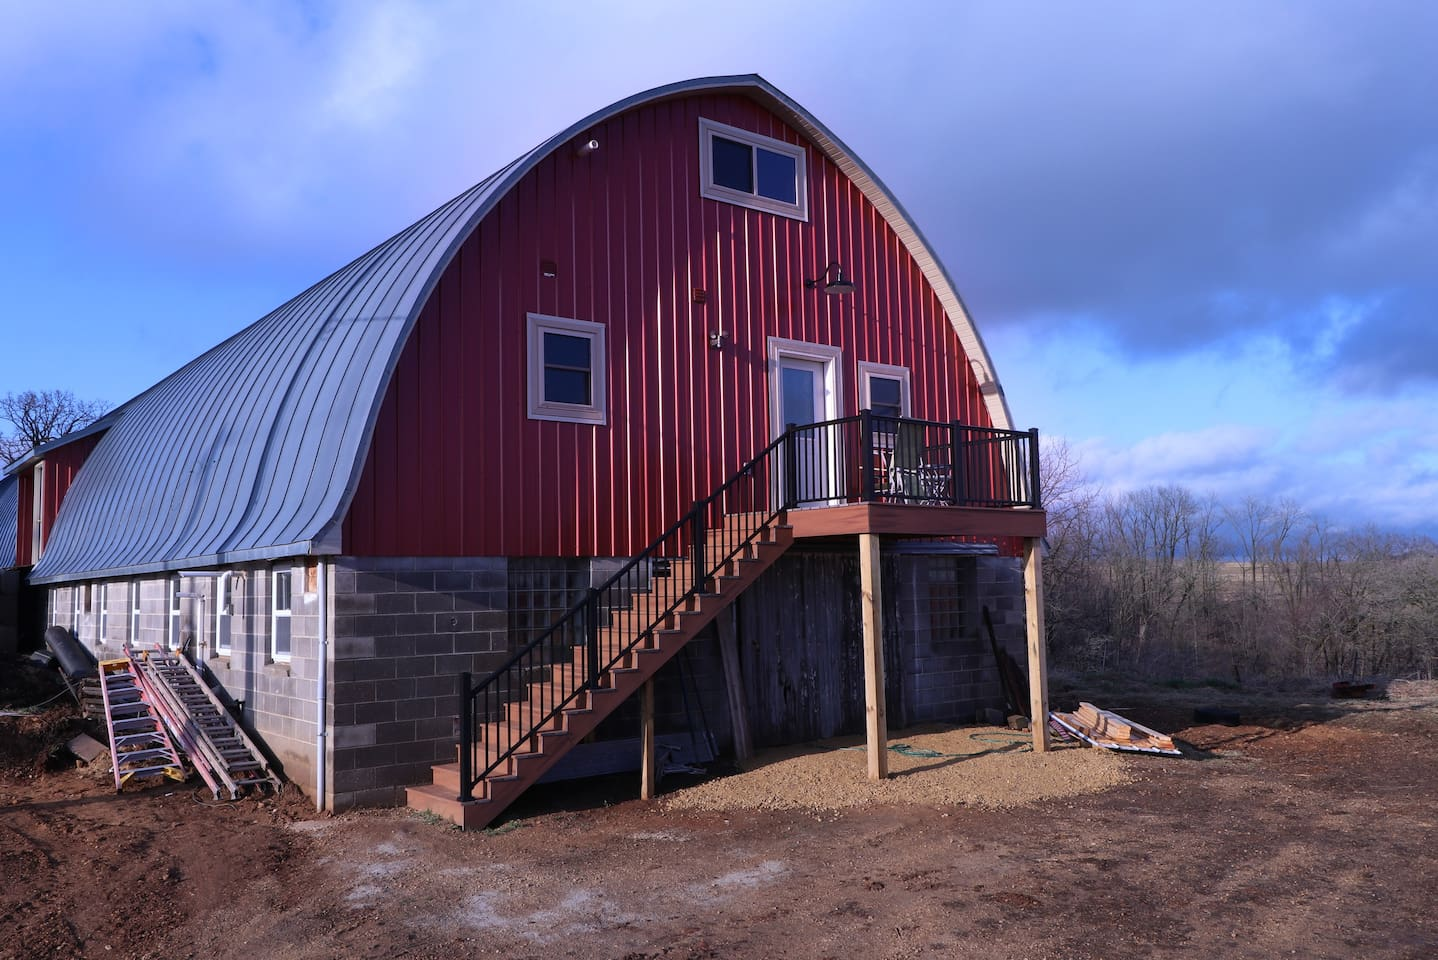 Our barn house is located in our barn's haymow. Guest can park to the side or in front of the barn. We also have patio furniture for guest to sit back, relax, and enjoy the beautiful country weather and view.